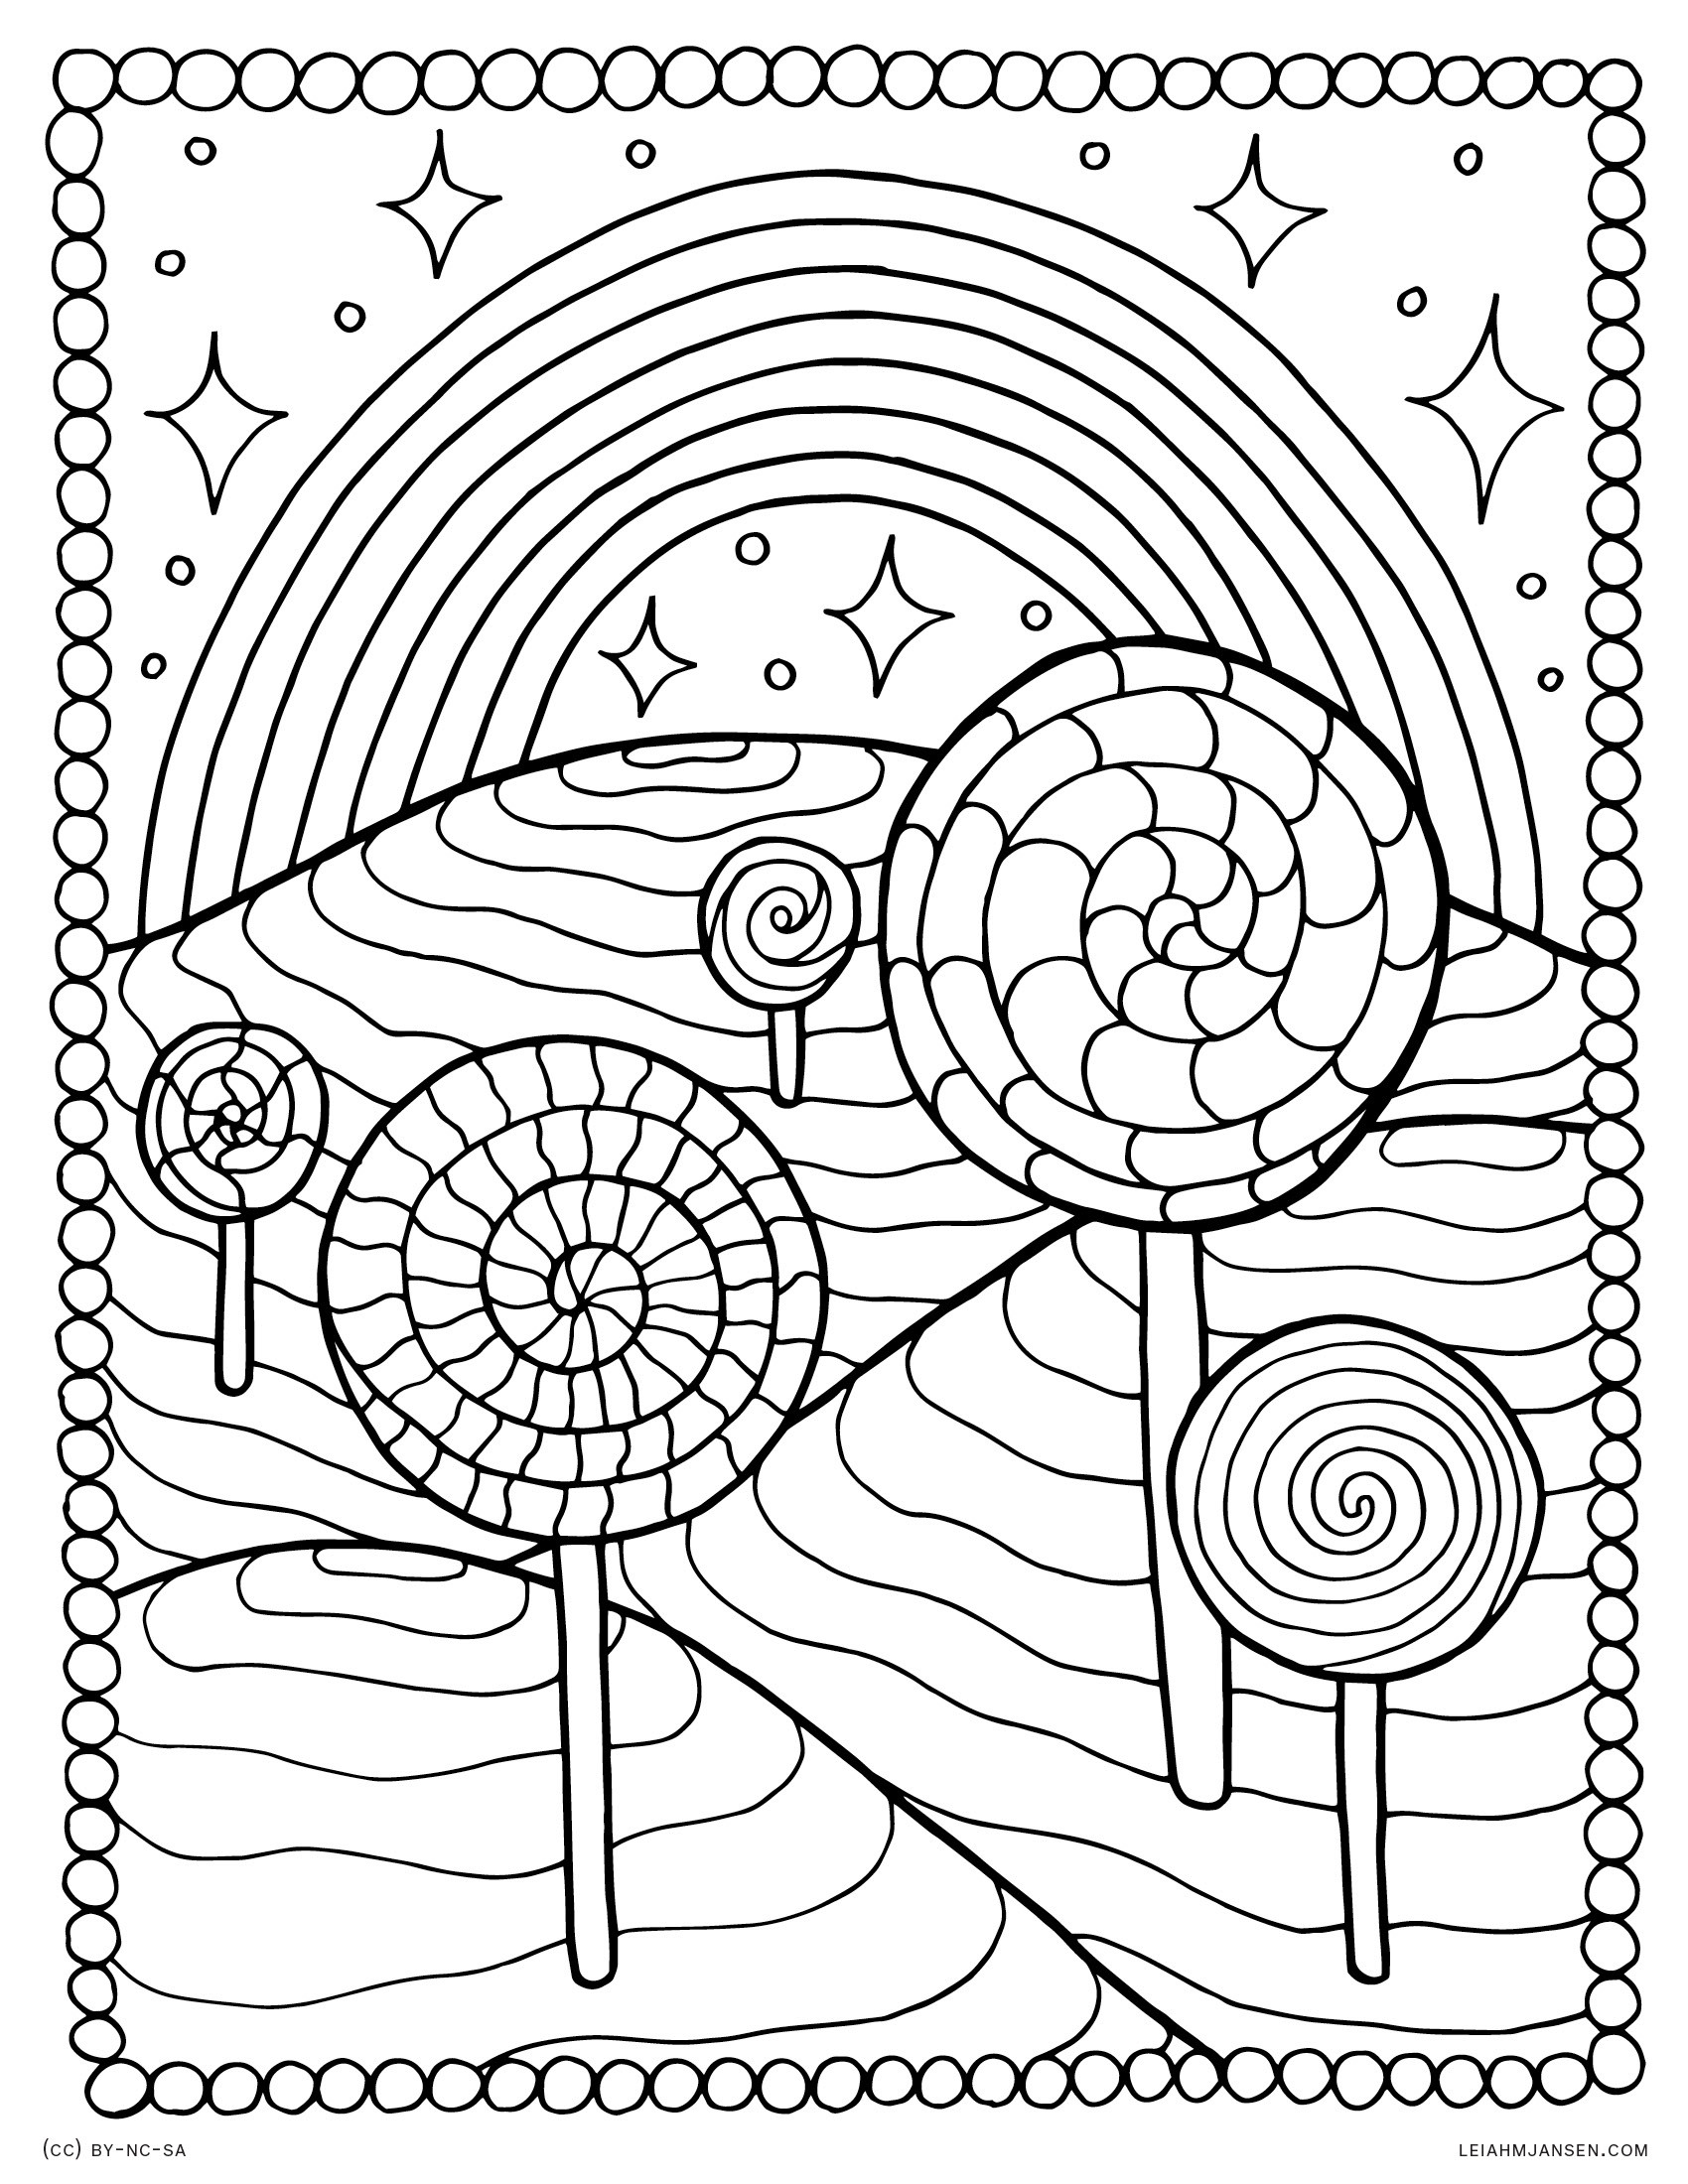 Rainbow Coloring Pages For Adults  Coloring Pages